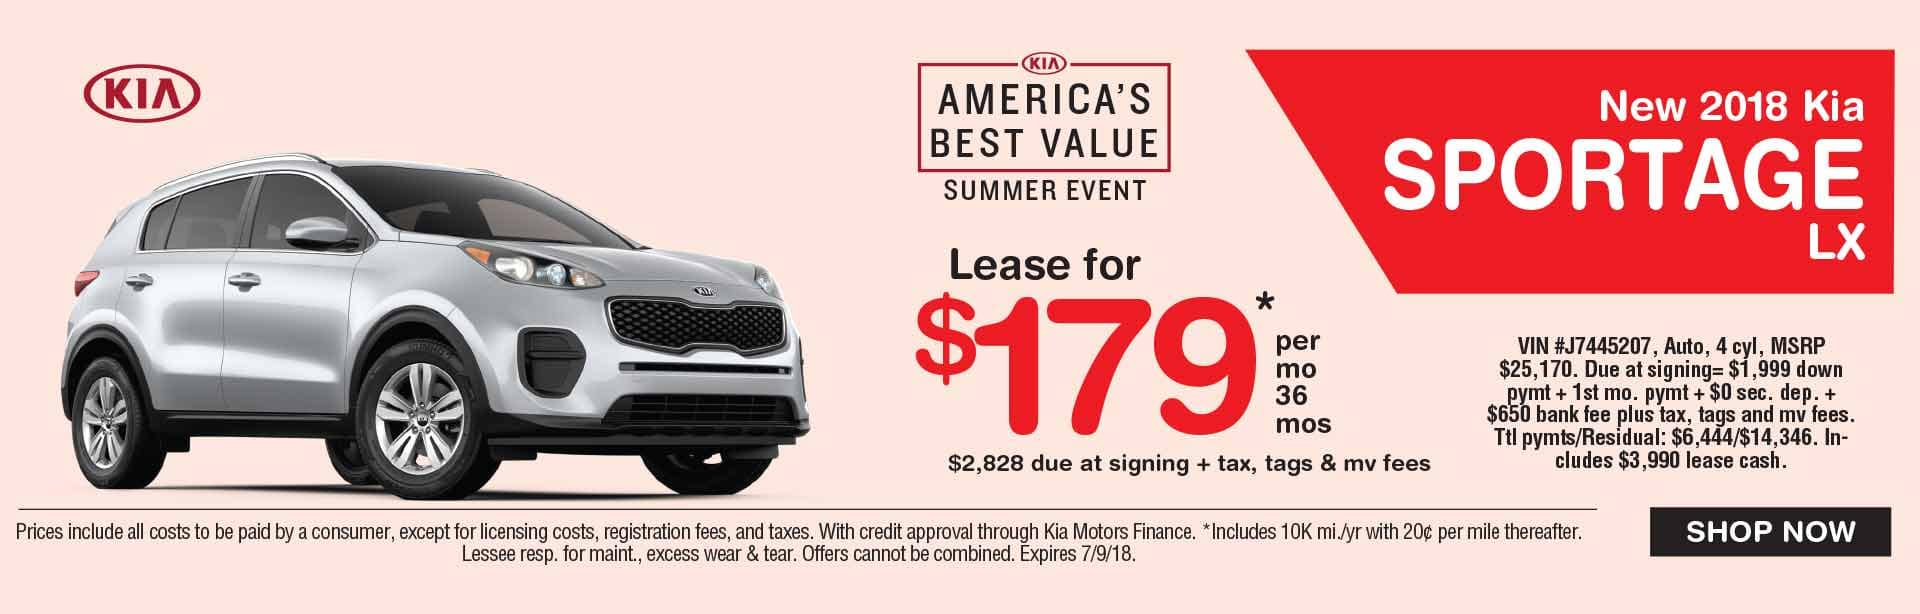 Global Kia Sportage Lease Special